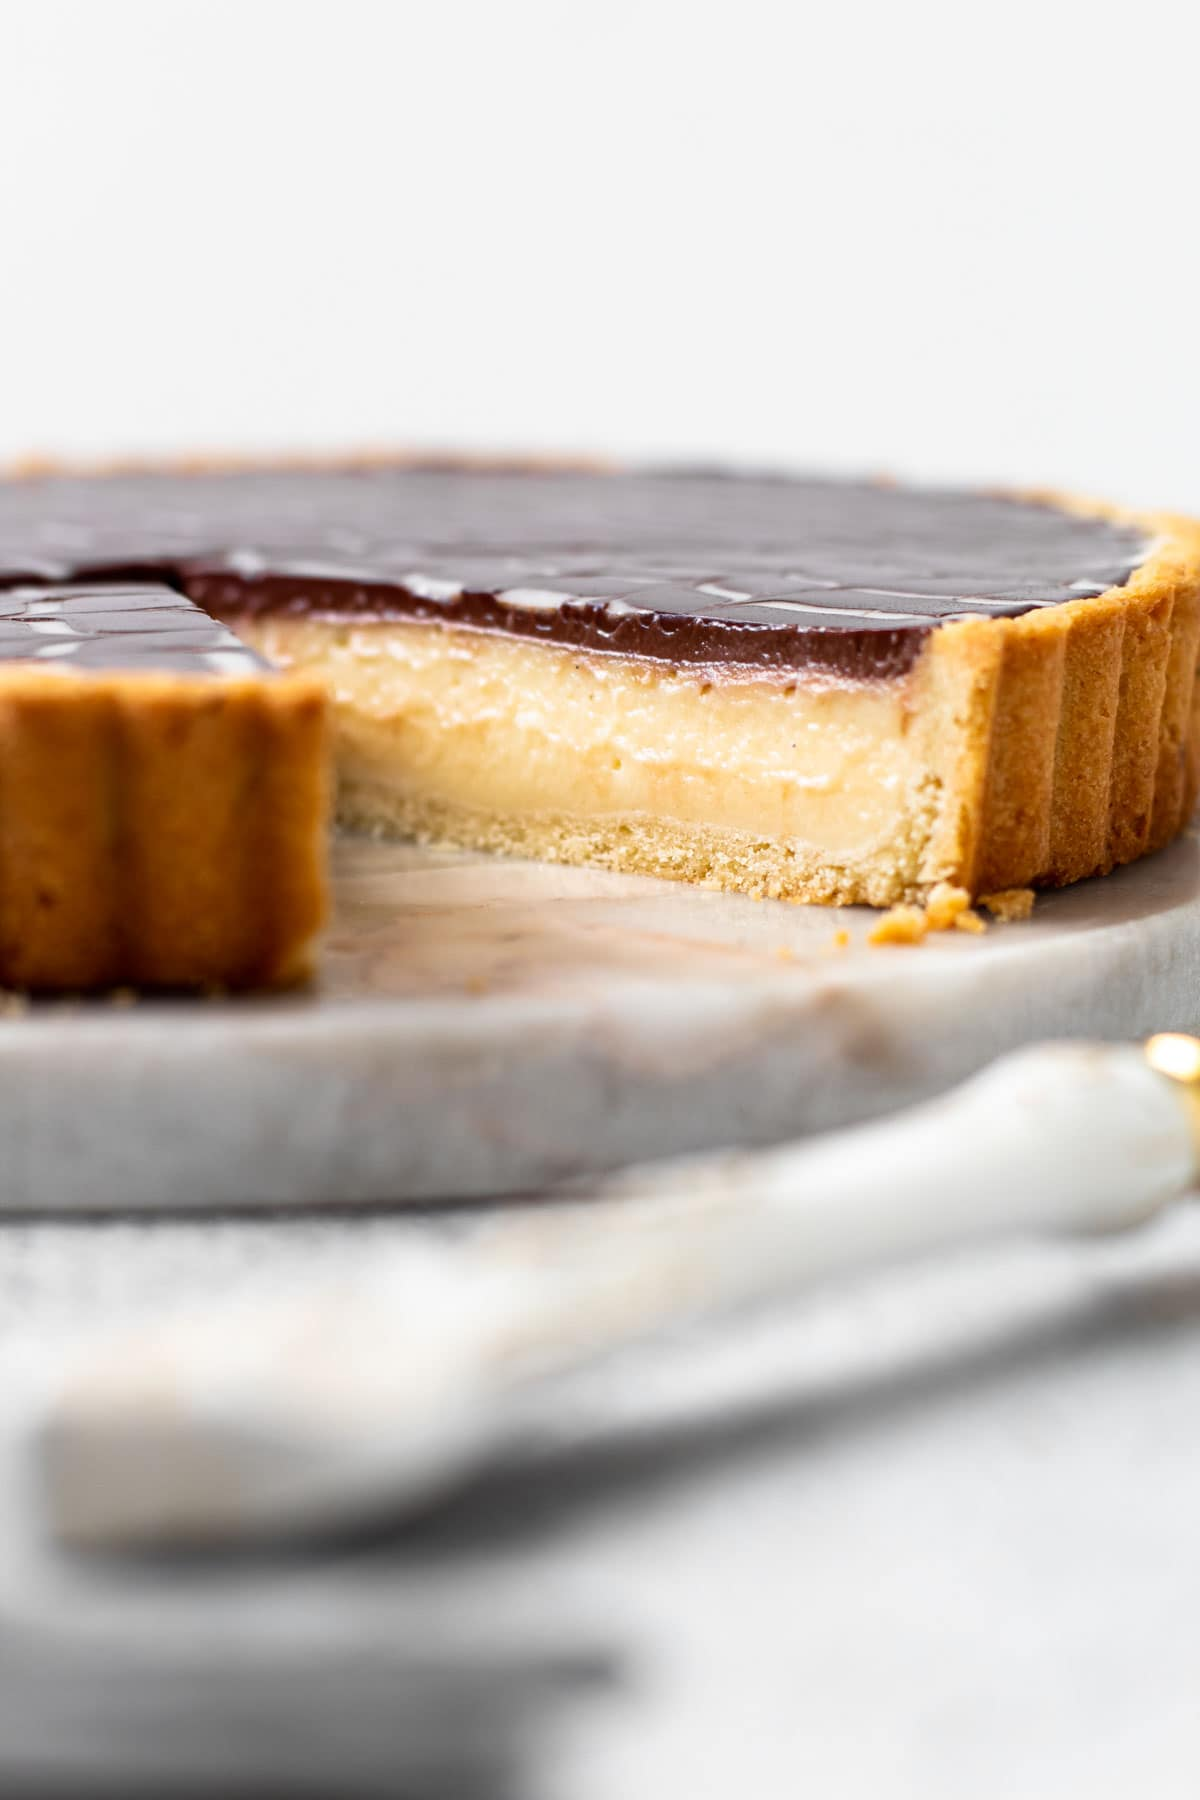 A profile view of the Eclair pie.